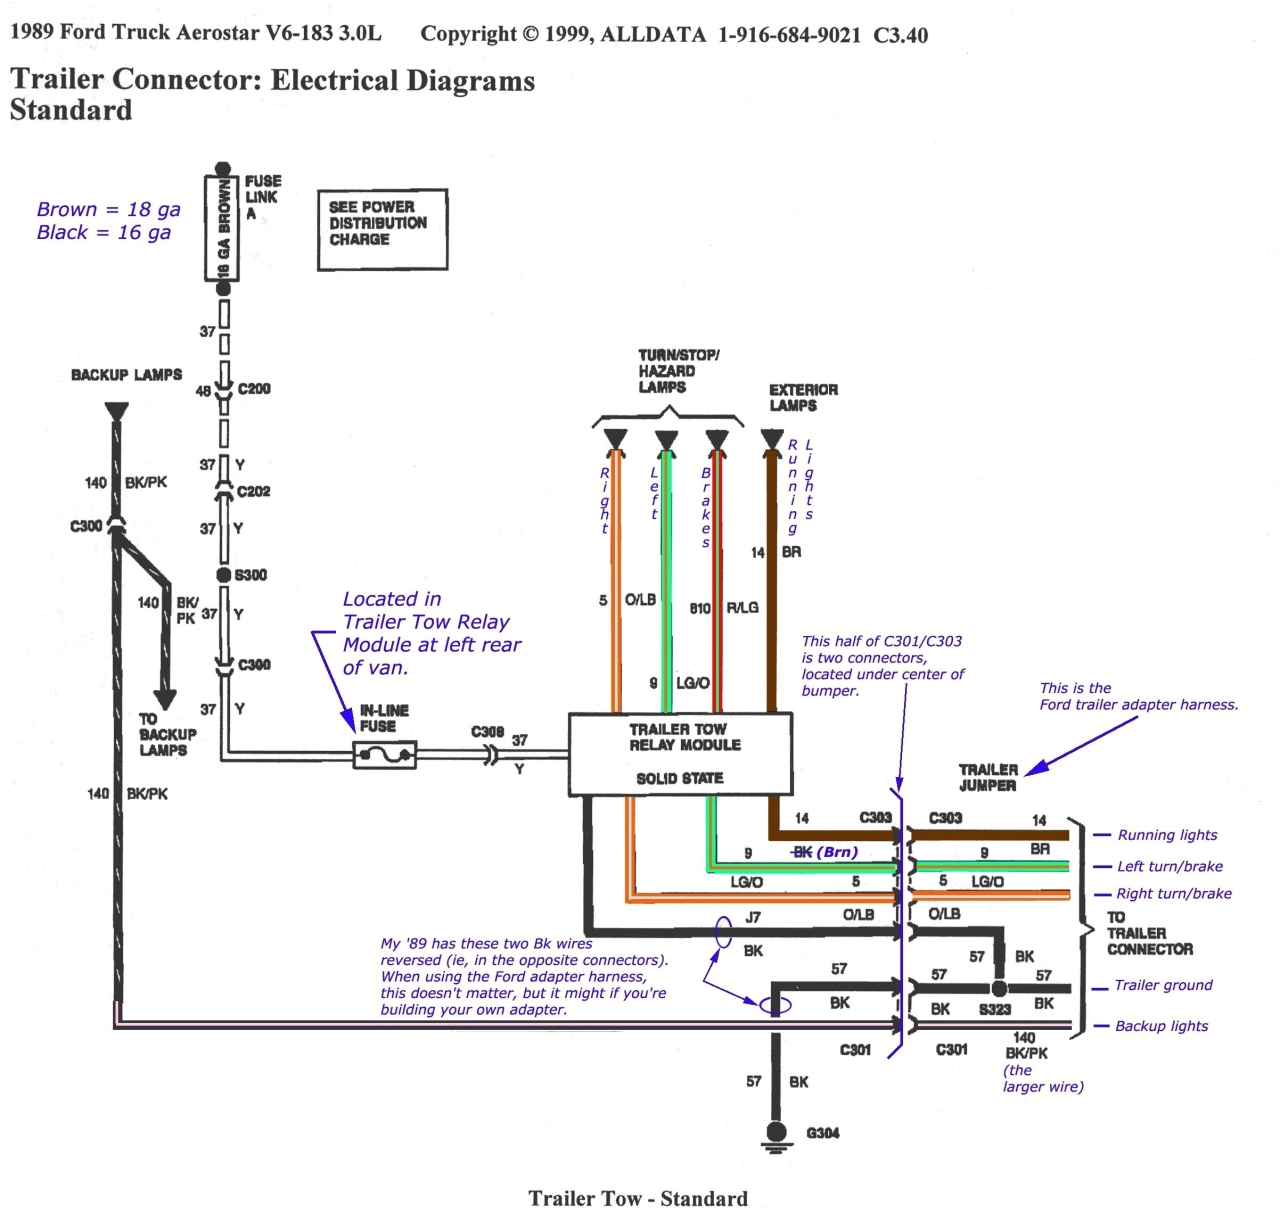 277 volt lighting wiring diagram chelsea pto wiring diagram ln1 wiring diagram from 277 volt lighting wiring diagram jpg